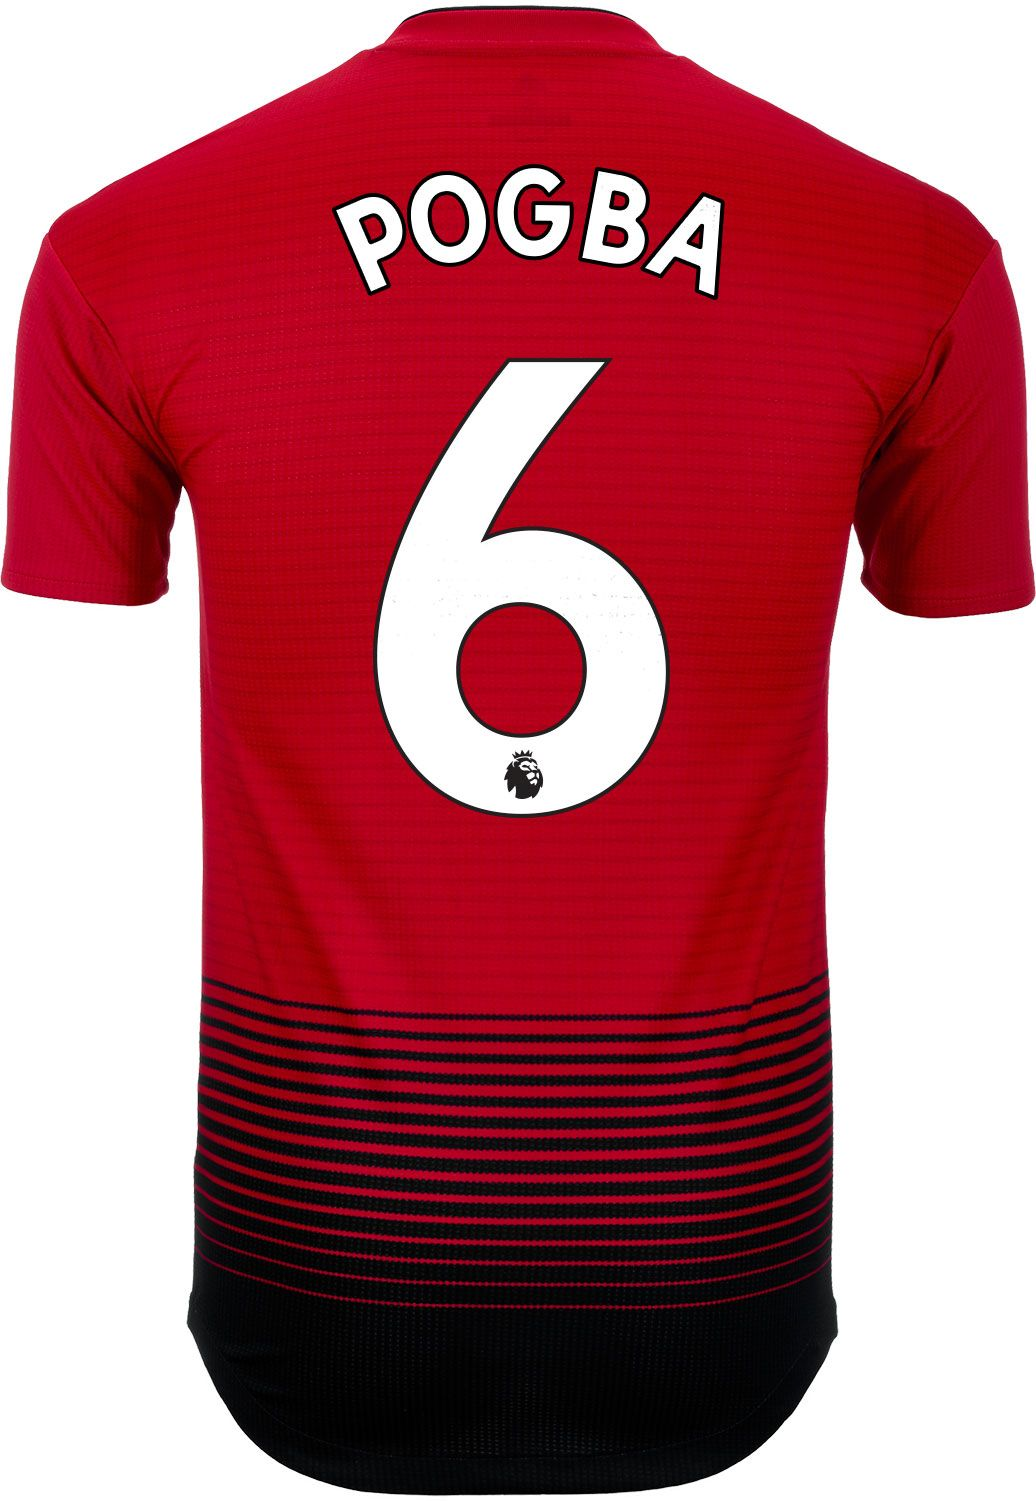 045b86470 adidas Paul Pogba Manchester United Home Authentic Jersey 2018-19 ...